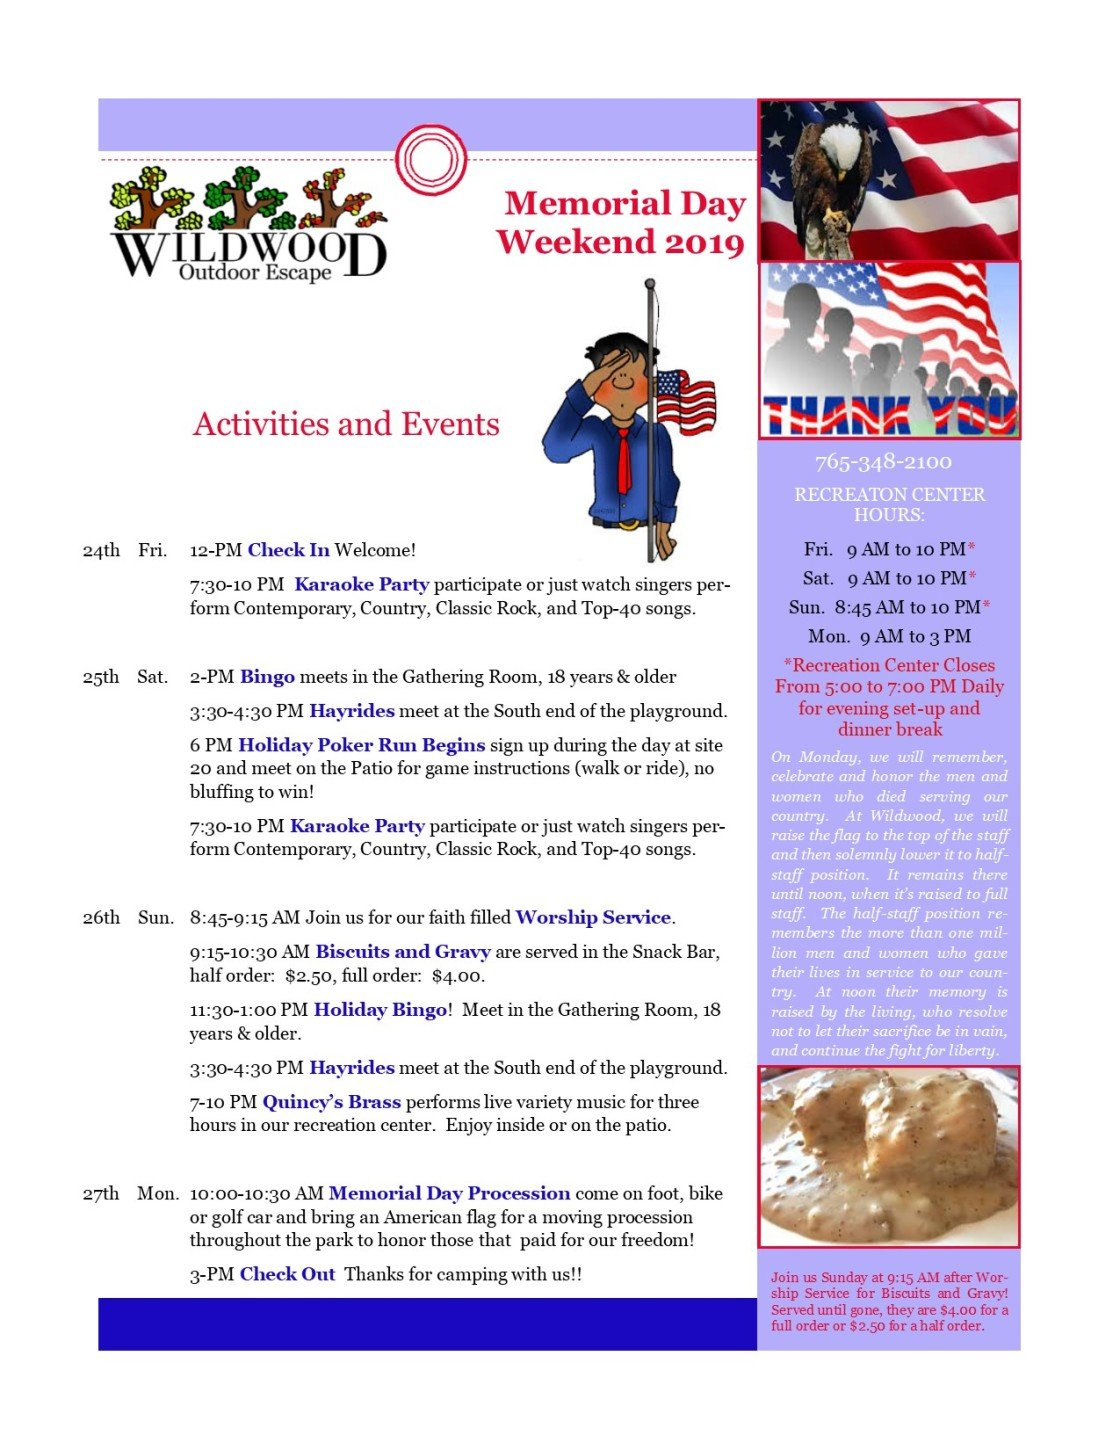 Image of activities & events for memorial day weekend